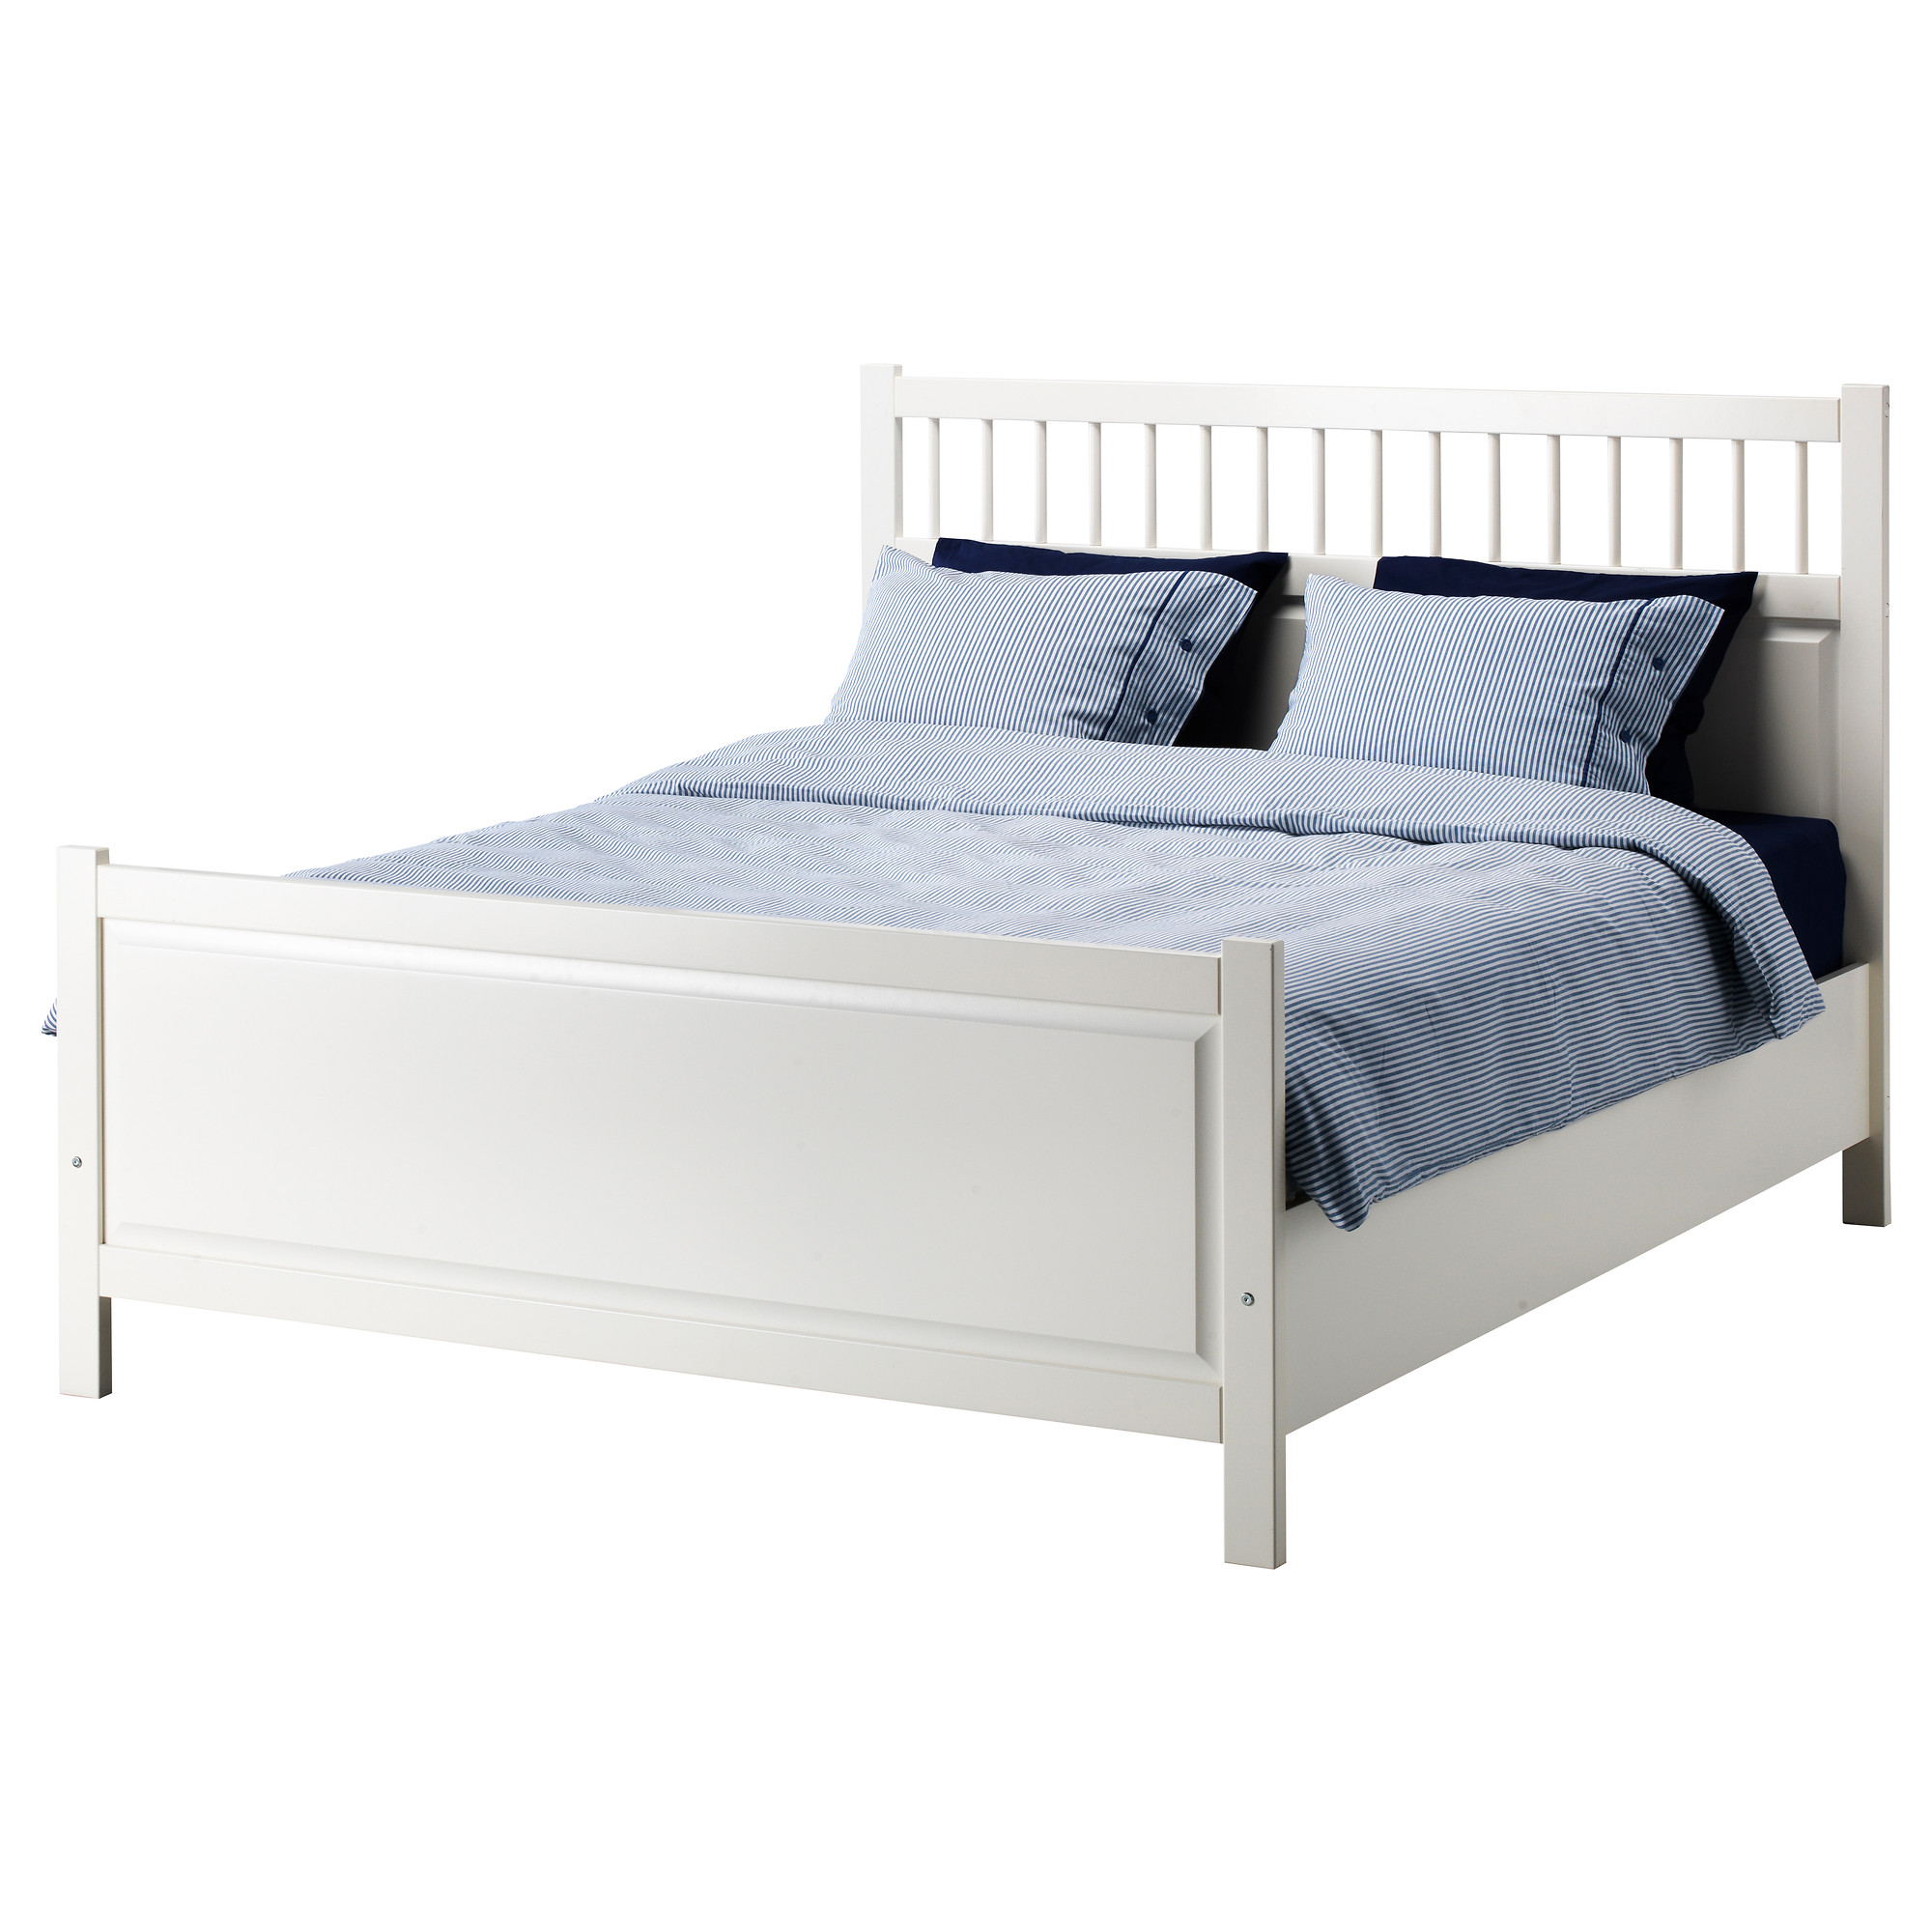 Ikea twin bed frames homesfeed Twin bed frames